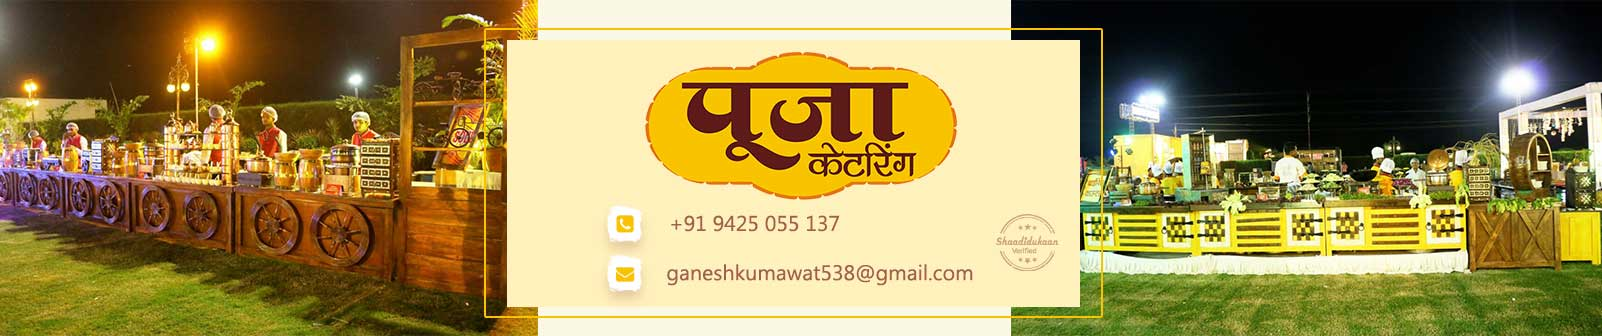 Pooja Catering